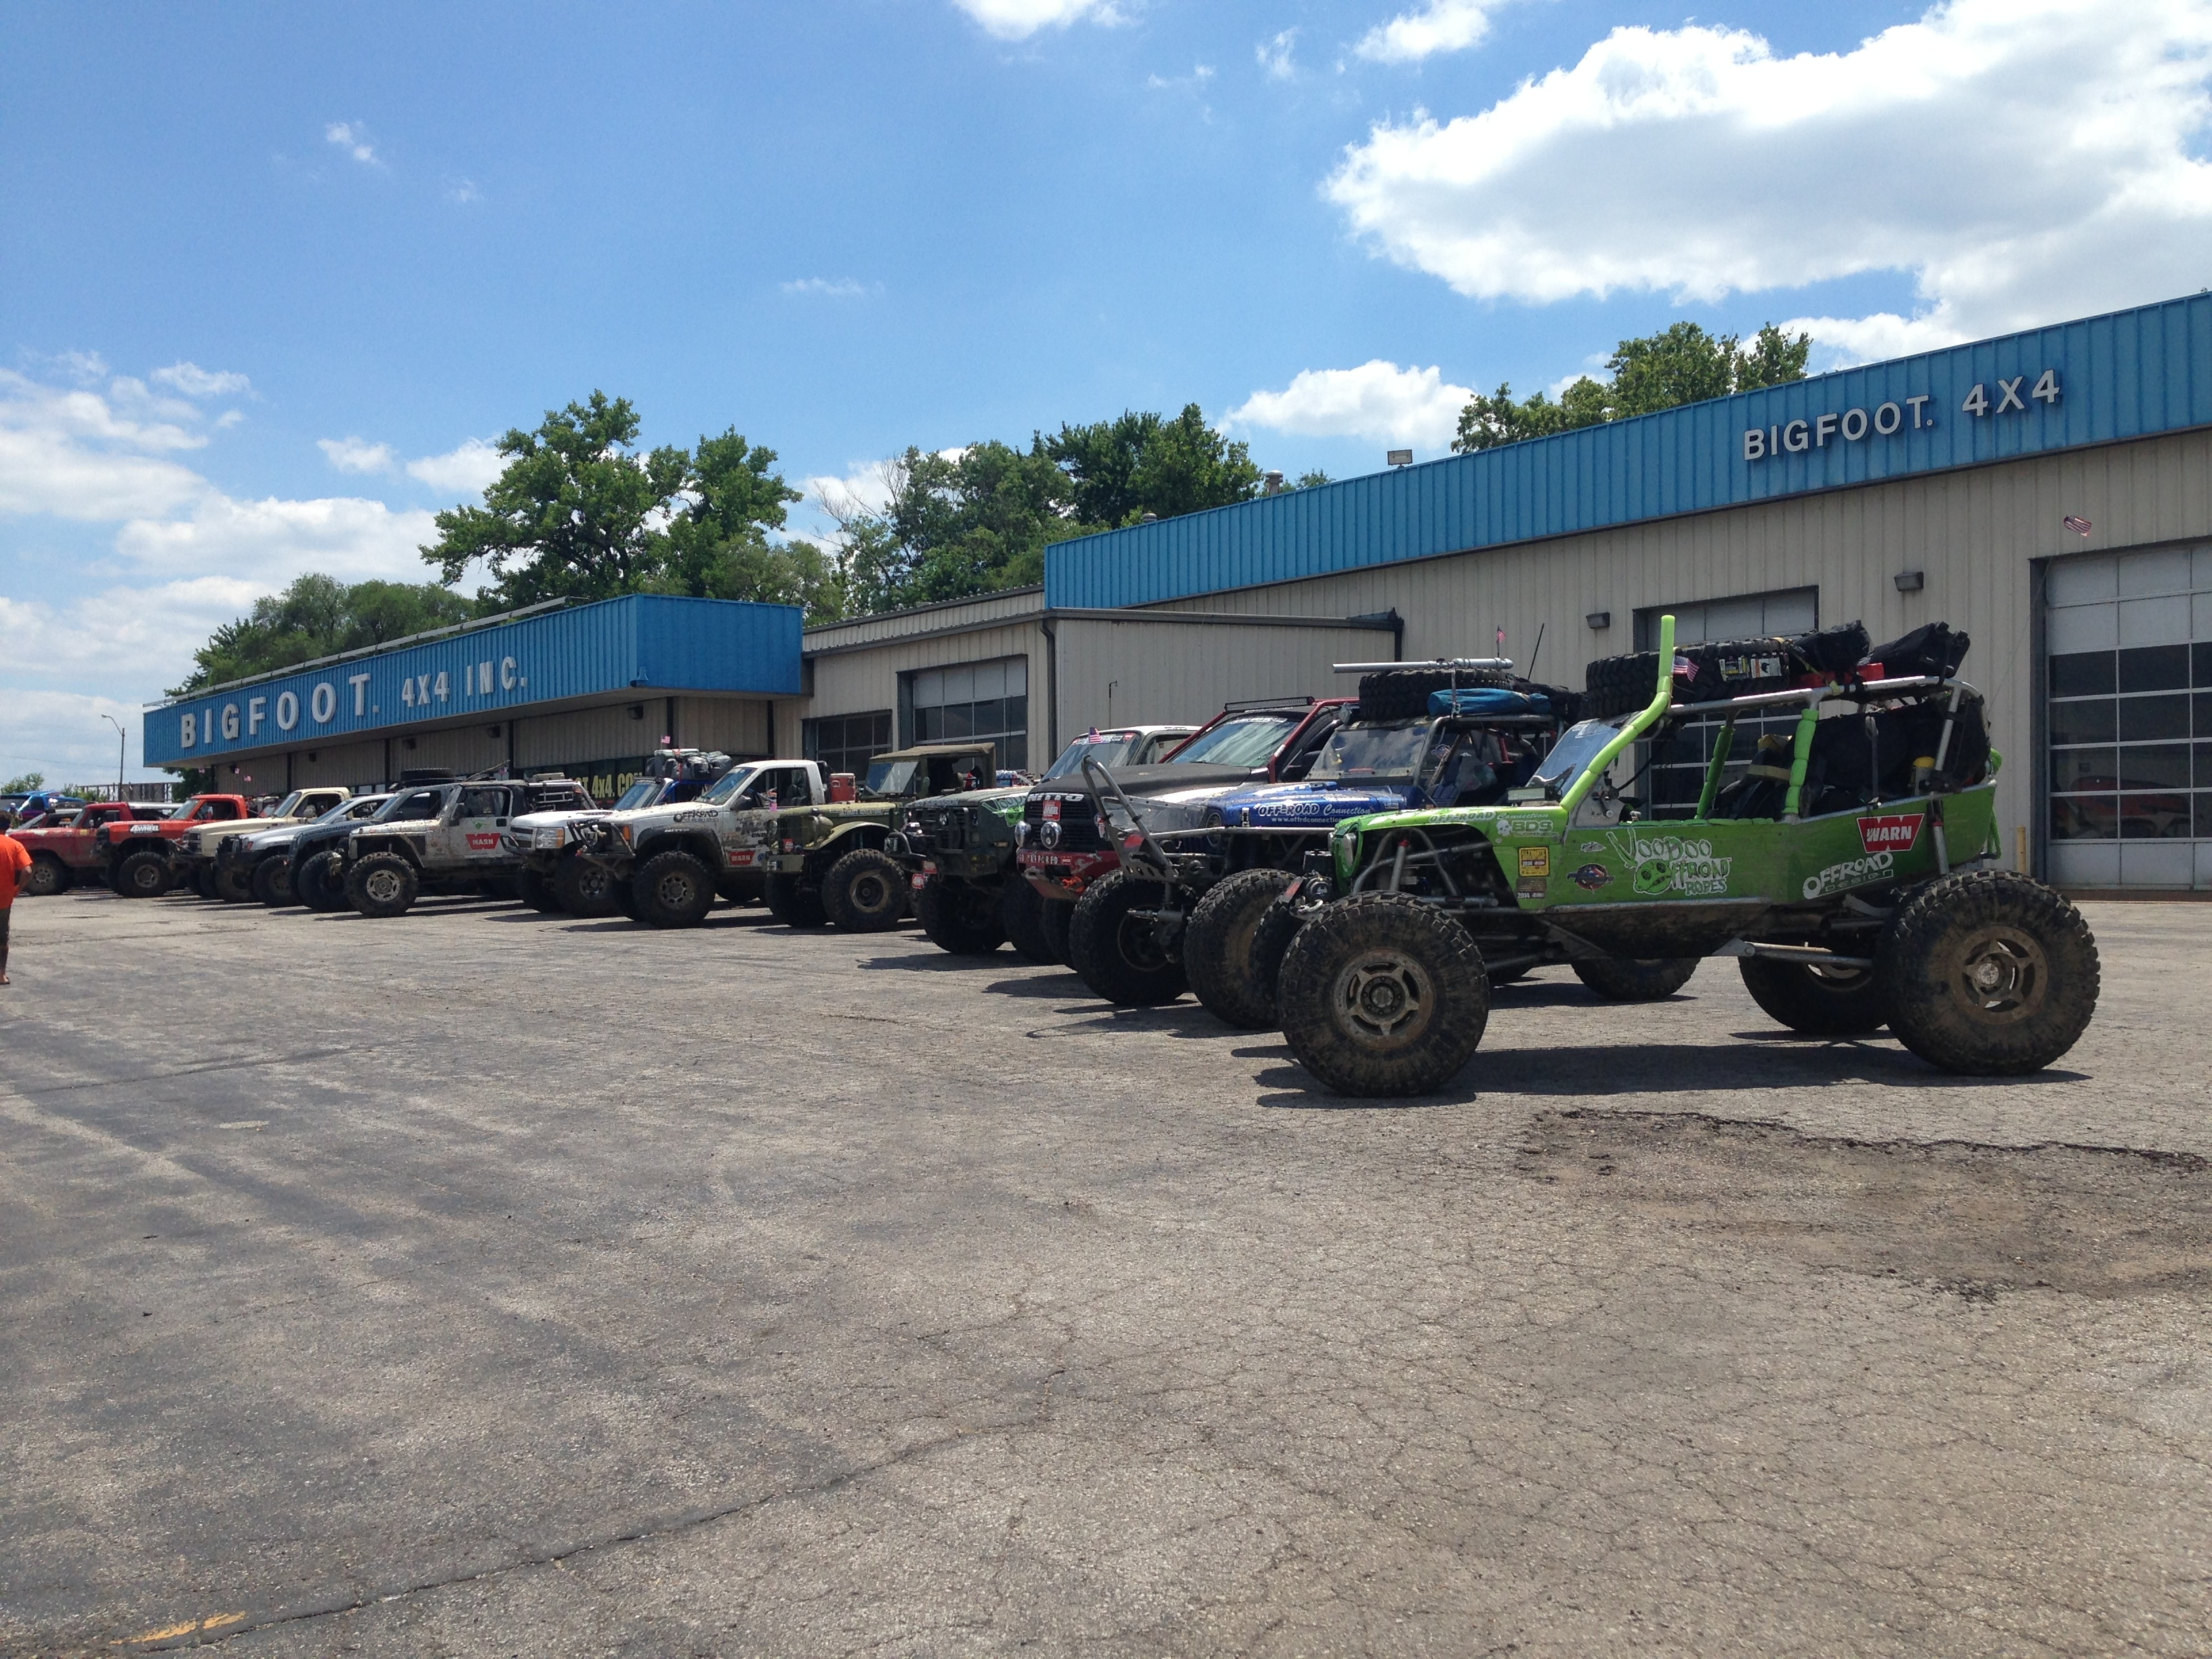 Ultimate Adventure 2014 Day 7 Road Day  15  Ultimate Adventure crew at Bigfoot 4x4 headquarters.JPG